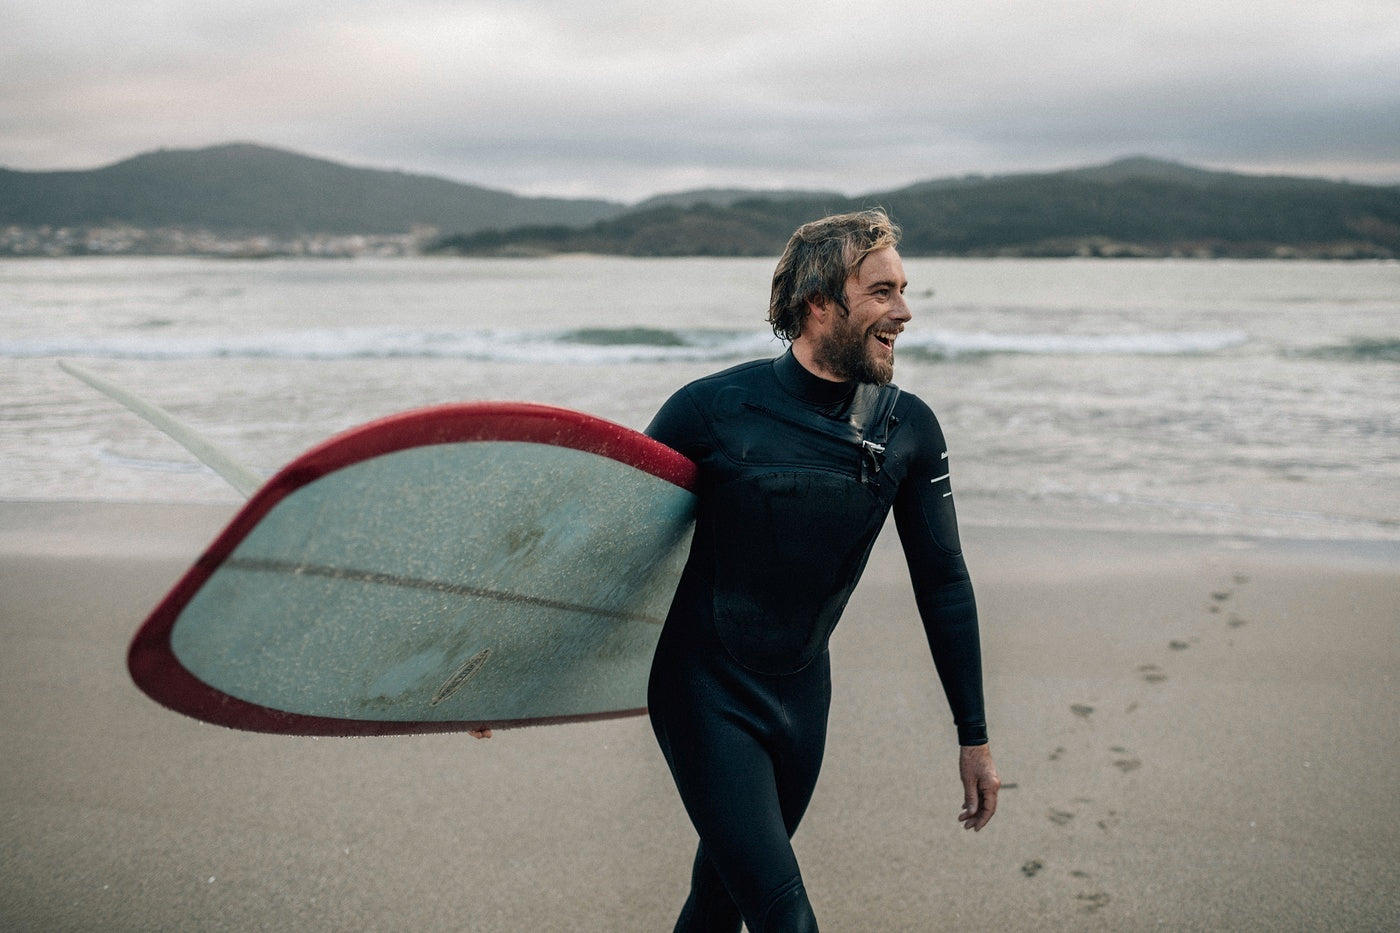 The Author, Mike Lay, grinning from ear to ear as he emerges from a satisfying surf